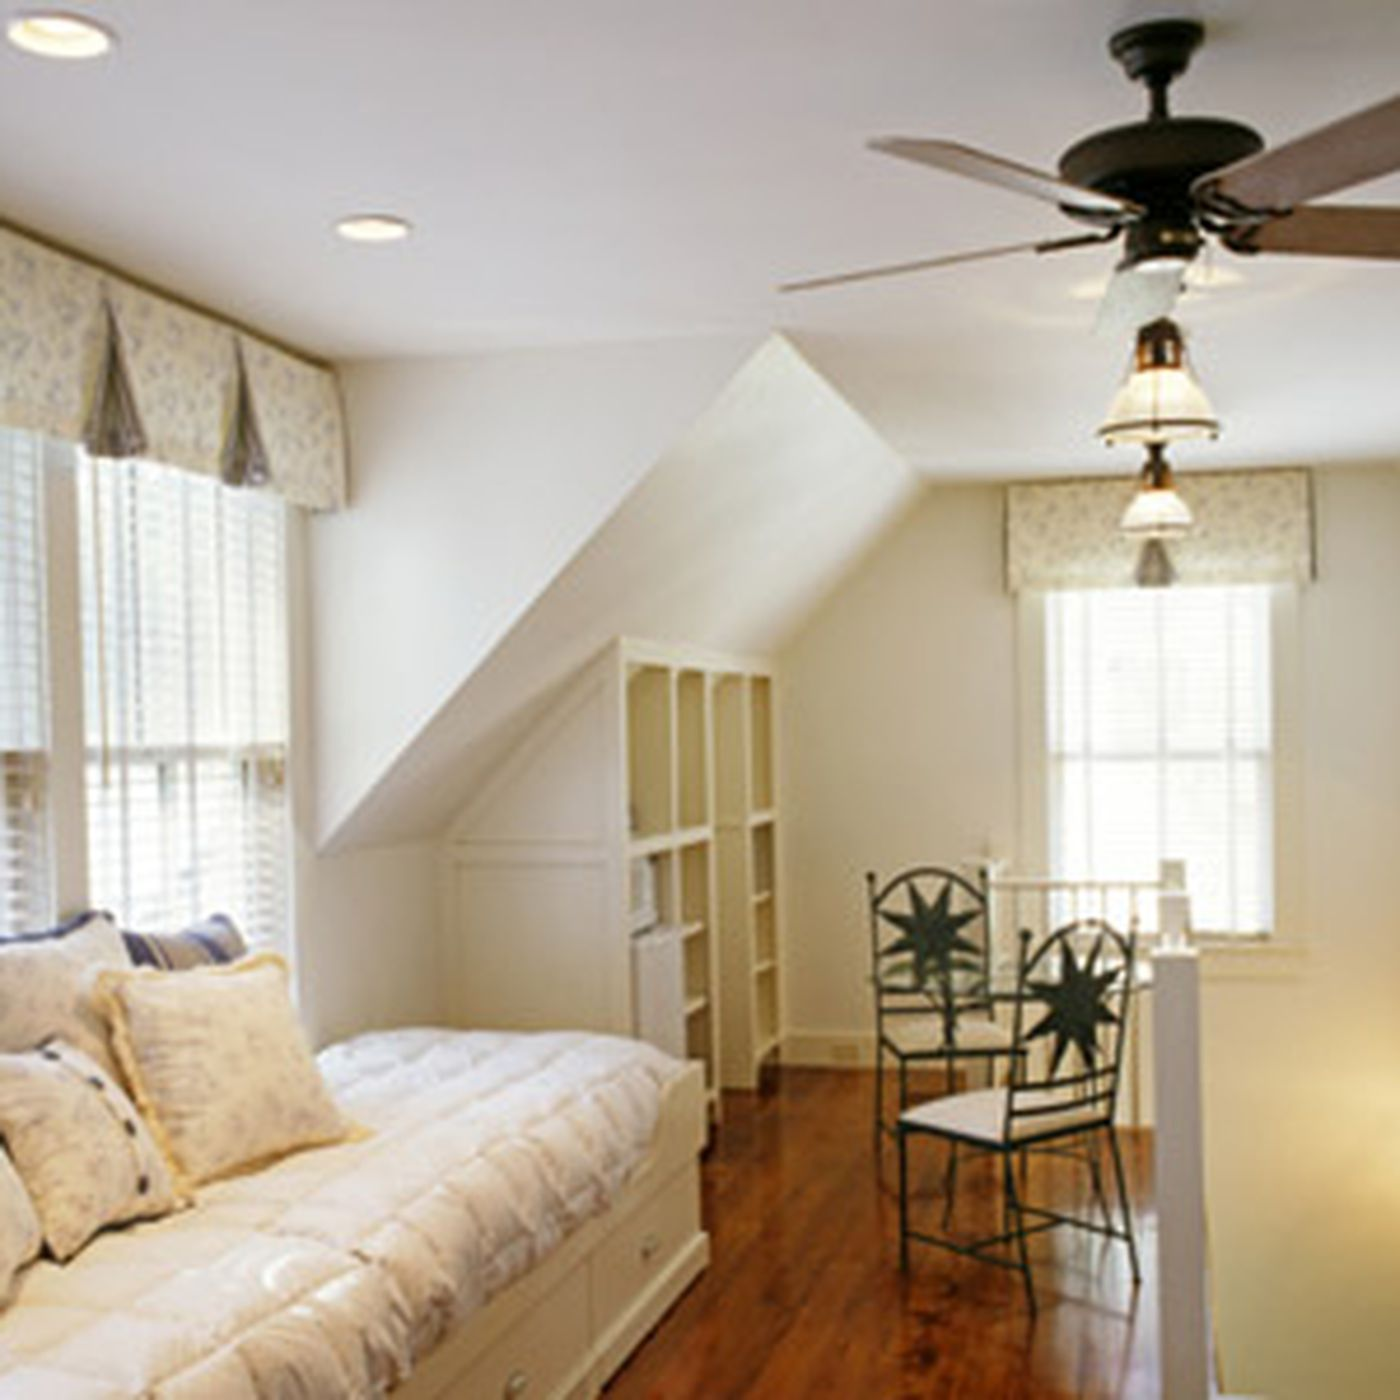 How To Size Up A Ceiling Fan This Old